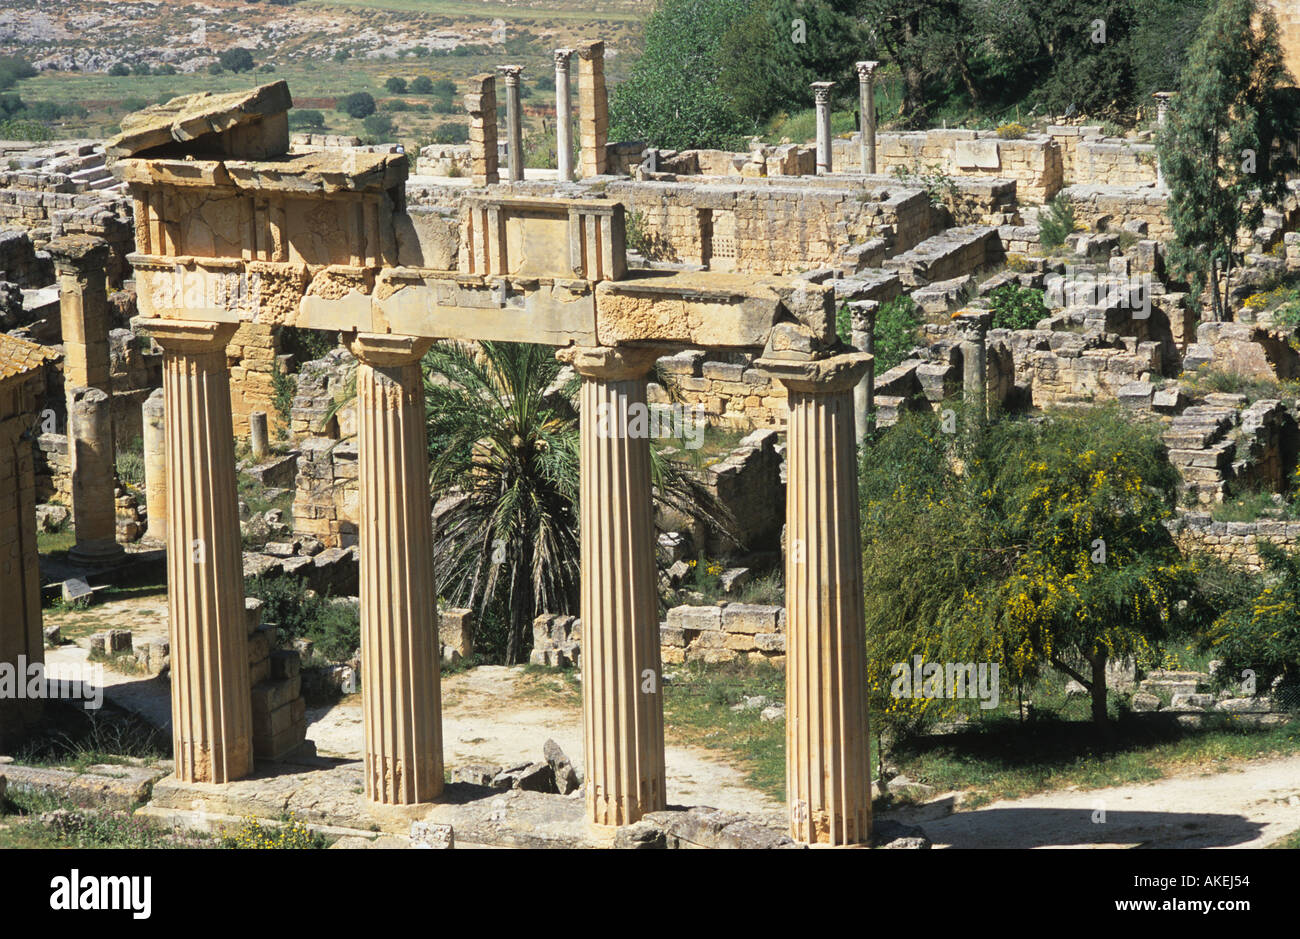 Temple of Apollo Cyrene Libya - Stock Image